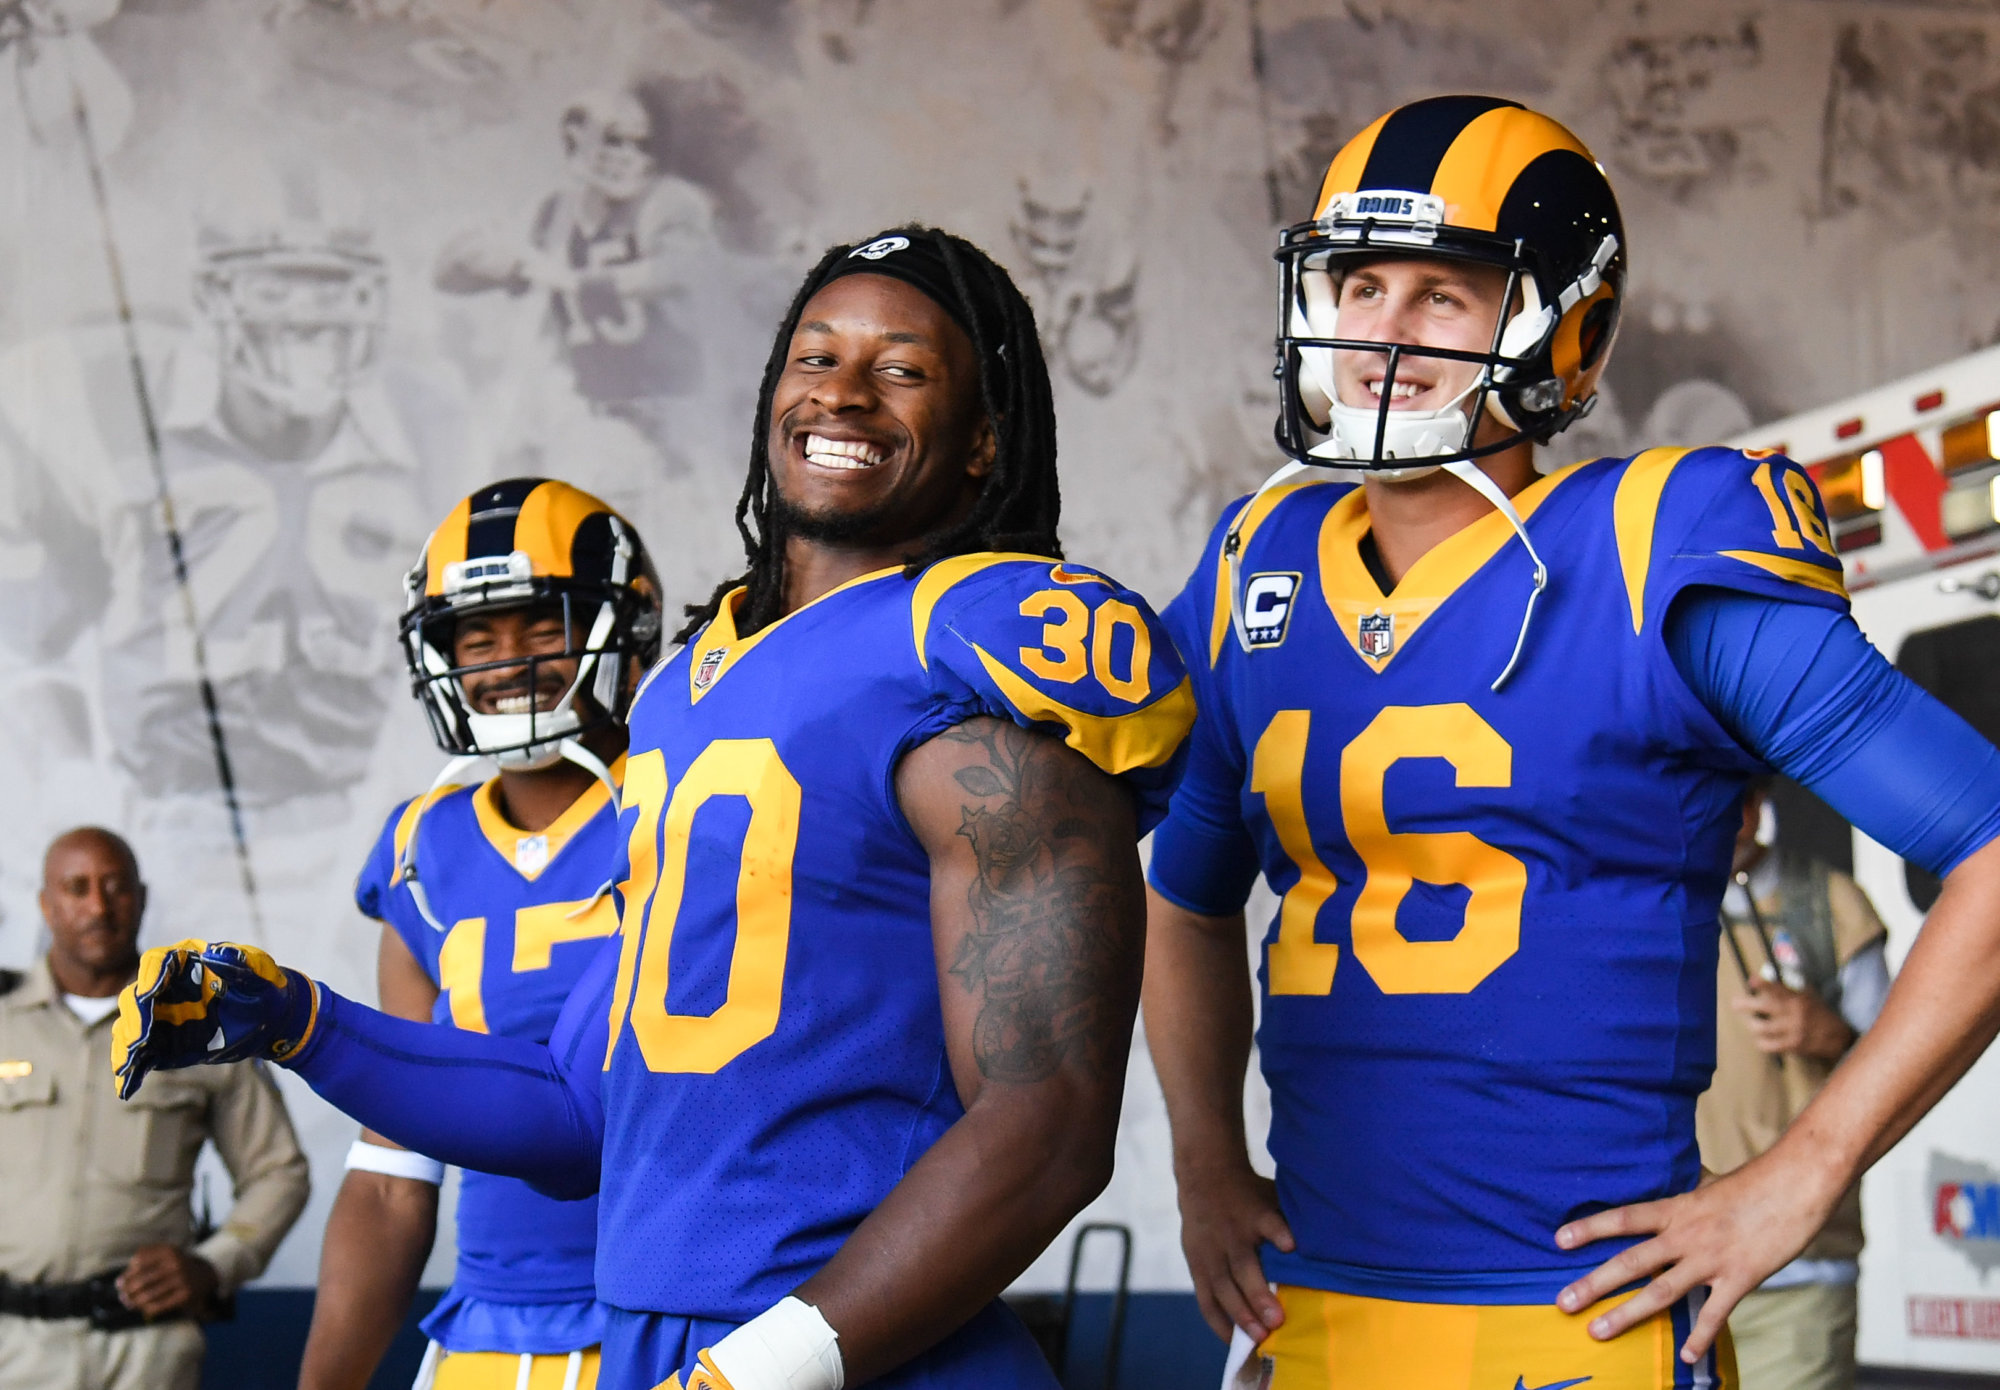 LOS ANGELES, CA - SEPTEMBER 27: Running back Todd Gurley #30 and quarterback Jared Goff #16 of the Los Angeles Rams enter the stadium through the tunnel area of their game against the Minnesota Vikings at Los Angeles Memorial Coliseum on September 27, 2018 in Los Angeles, California. (Photo by Harry How/Getty Images)